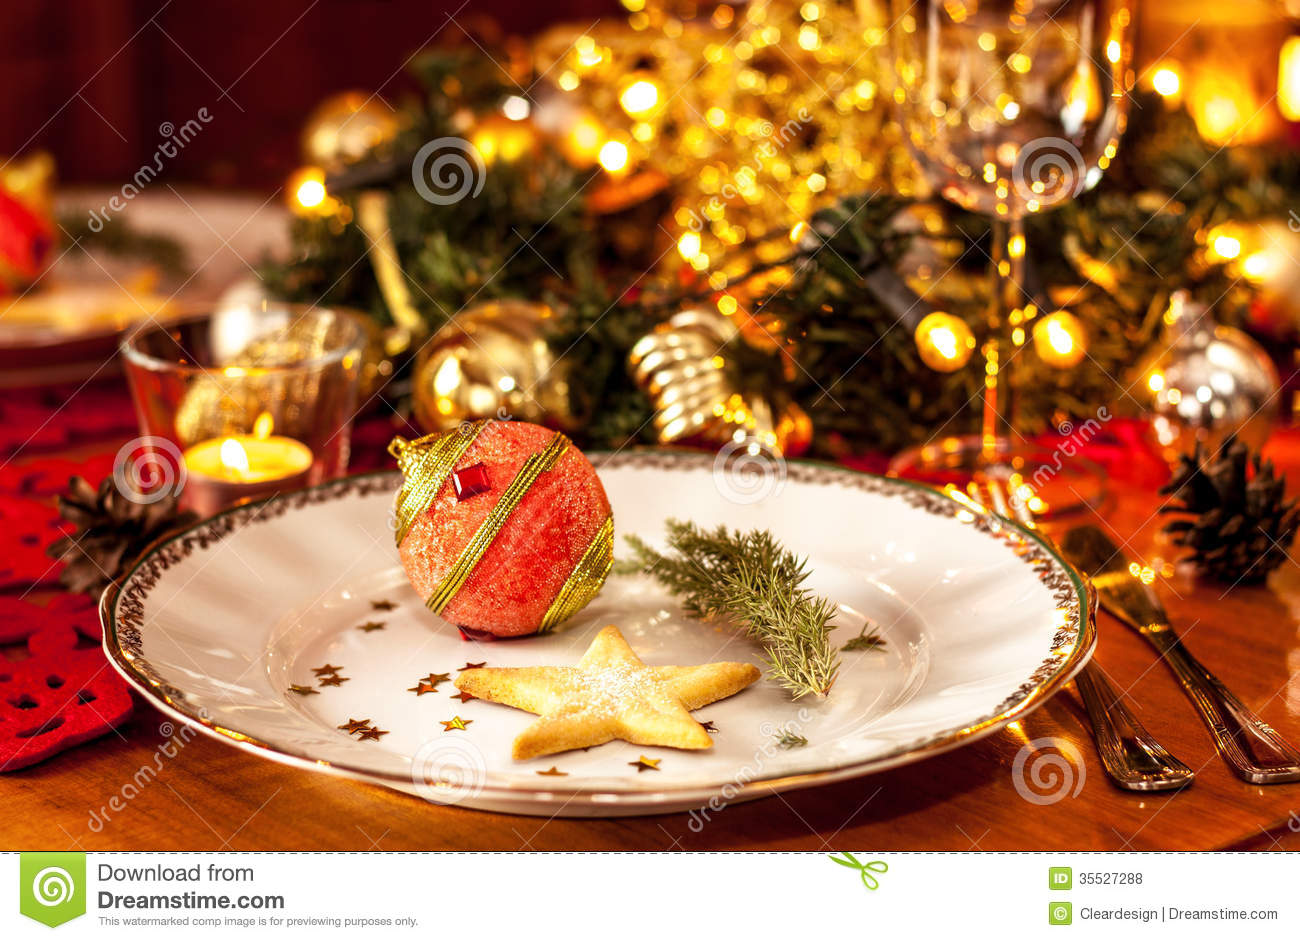 Art party decorating ideas the image for Ideas for christmas dinner